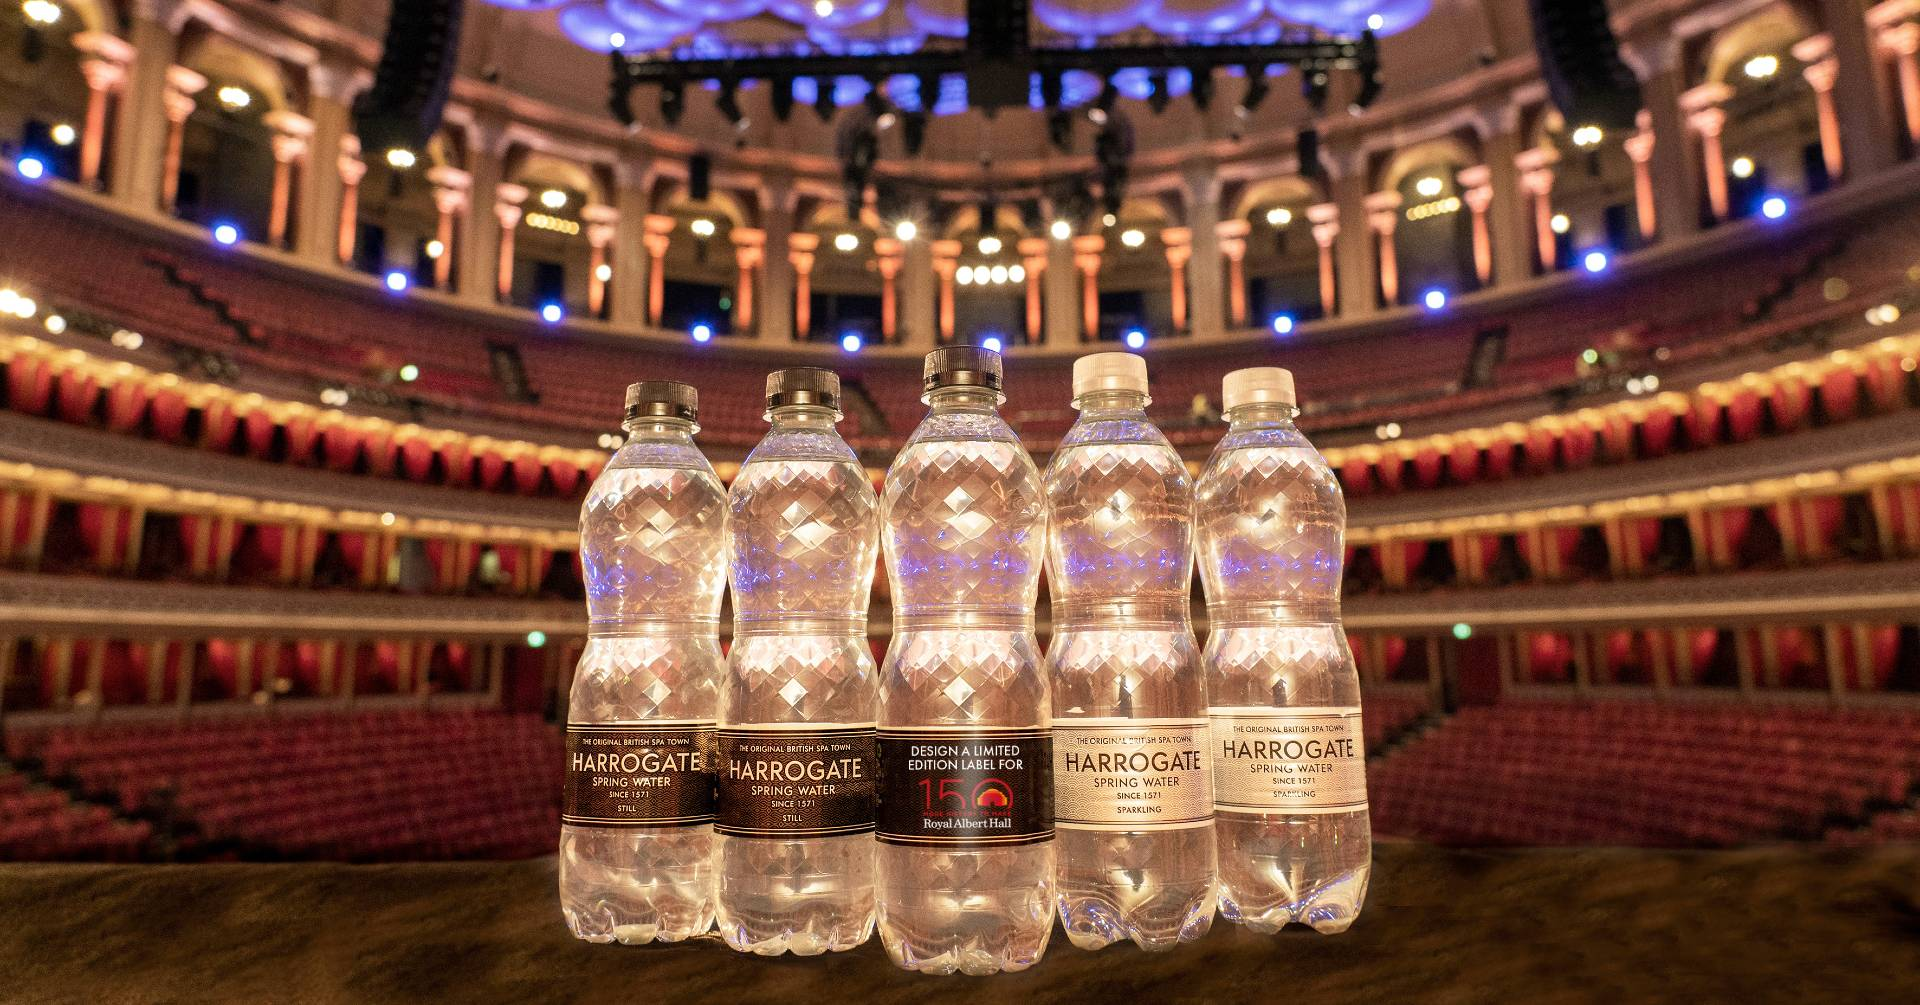 Creatives called for Harrogate's role in Royal Albert Hall anniversary